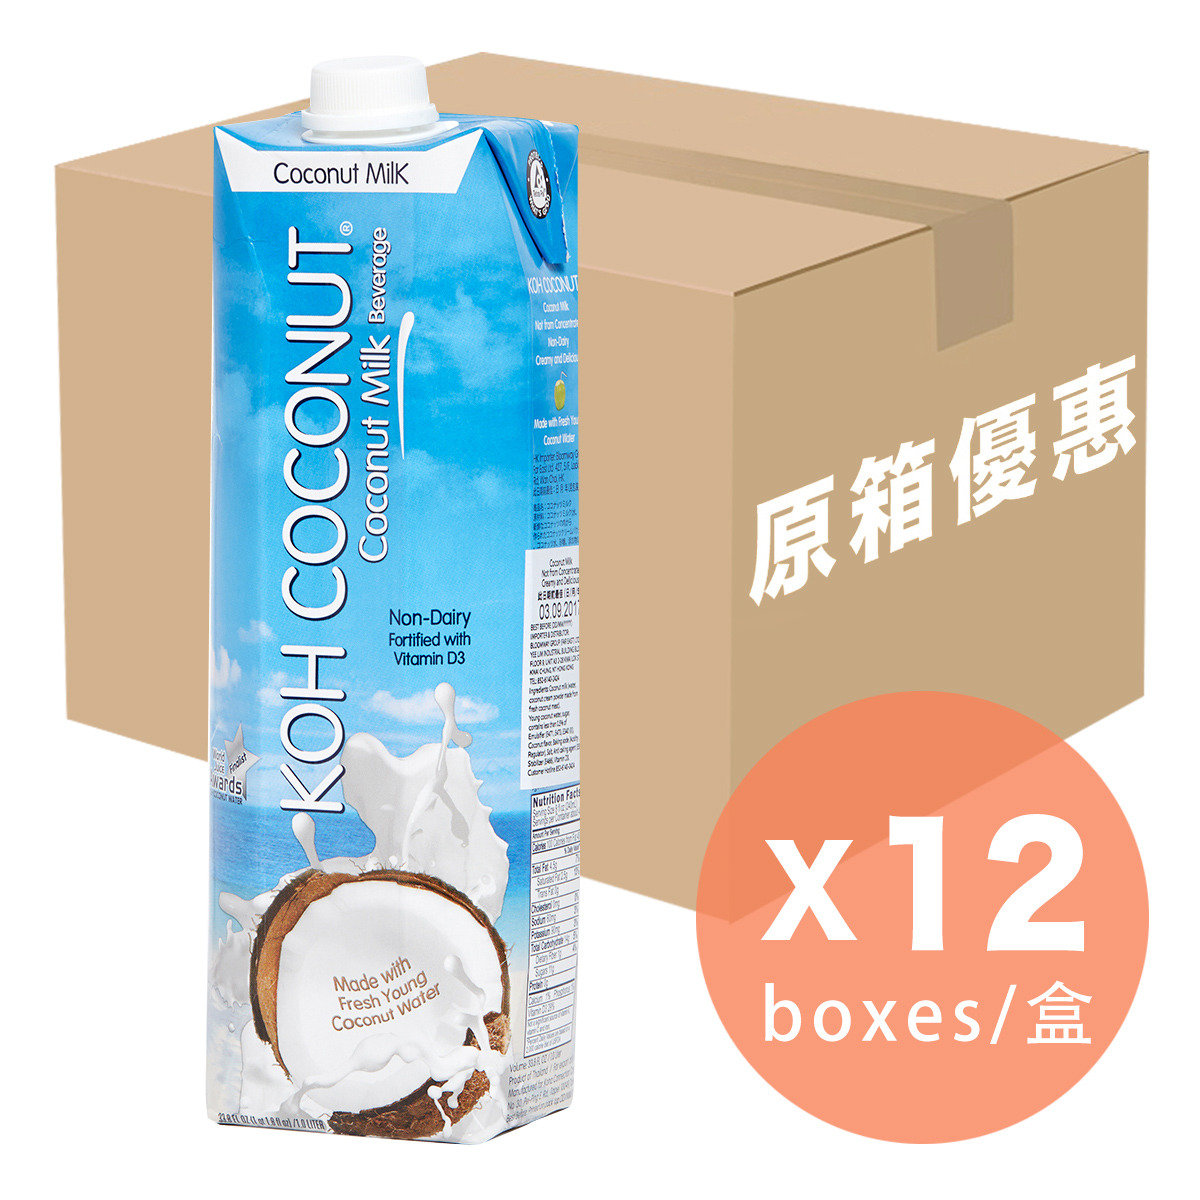 [Full Case] 100% Coconut Milk